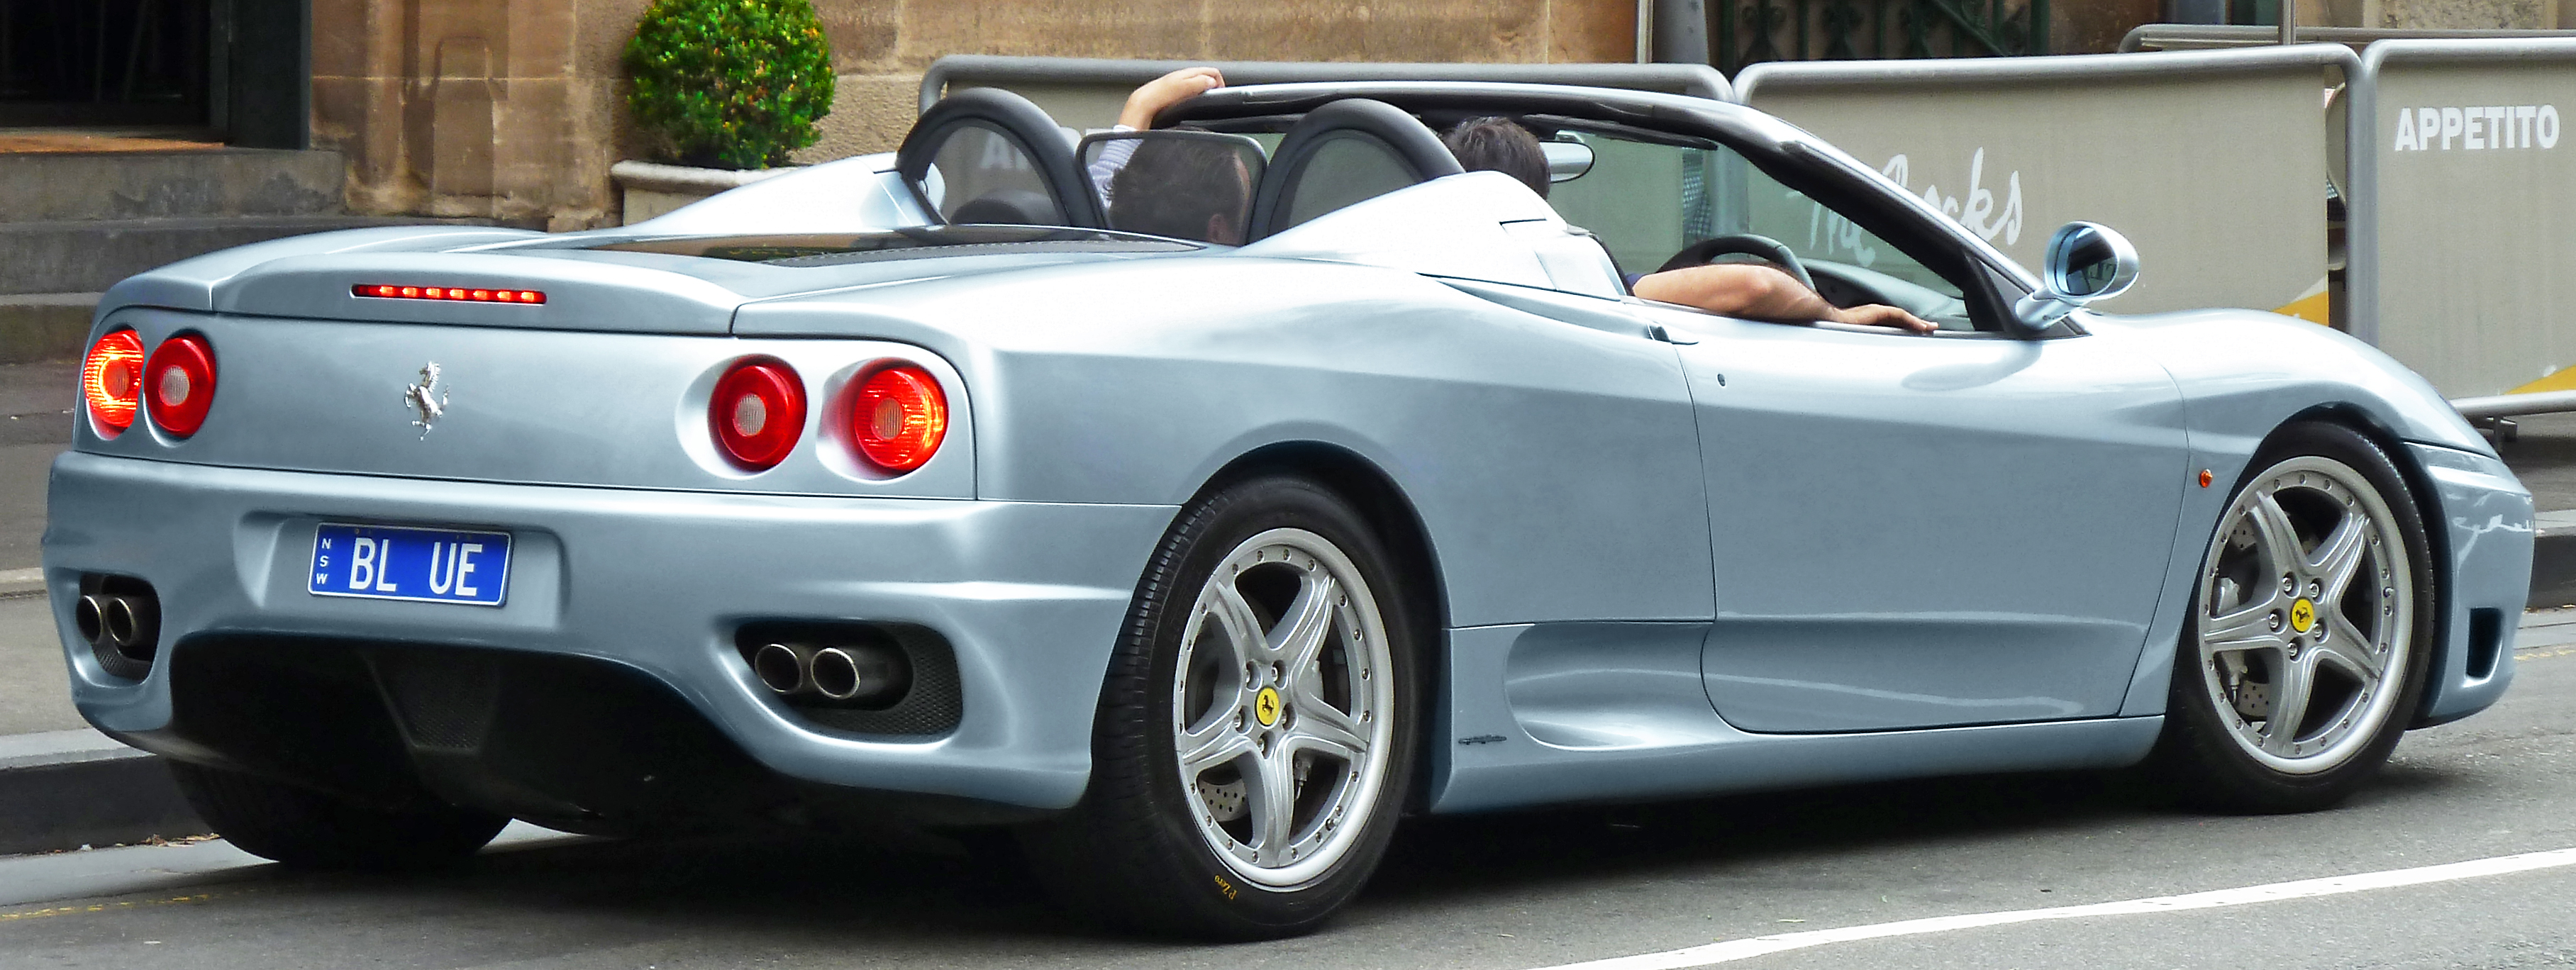 File:2000-2005 Ferrari 360 Spider convertible (2011-11-08).jpg ...